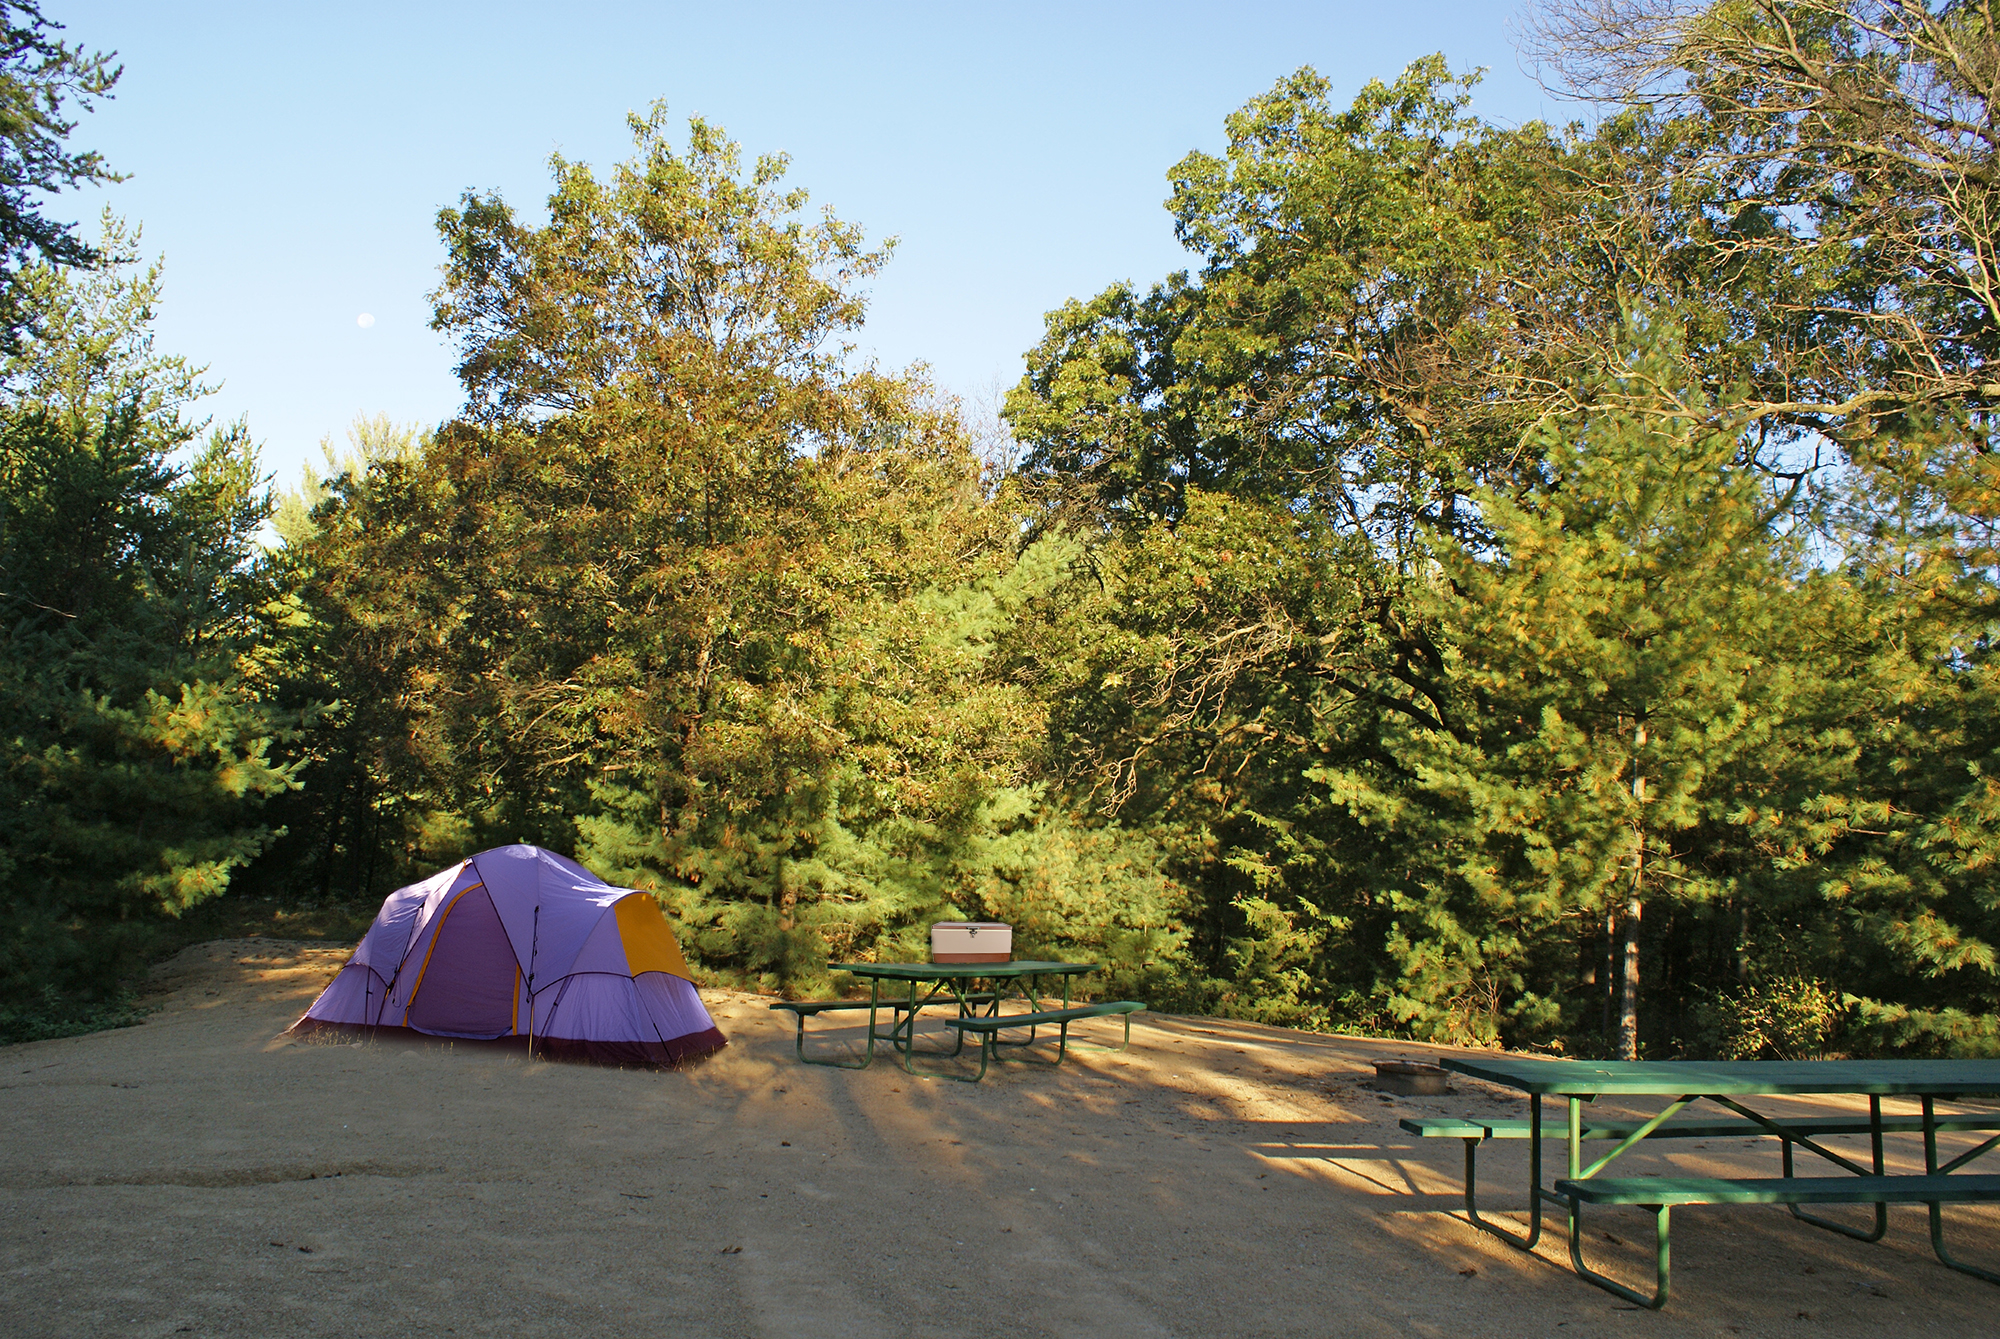 Overnight Campsites at Smokey Hollow Campground